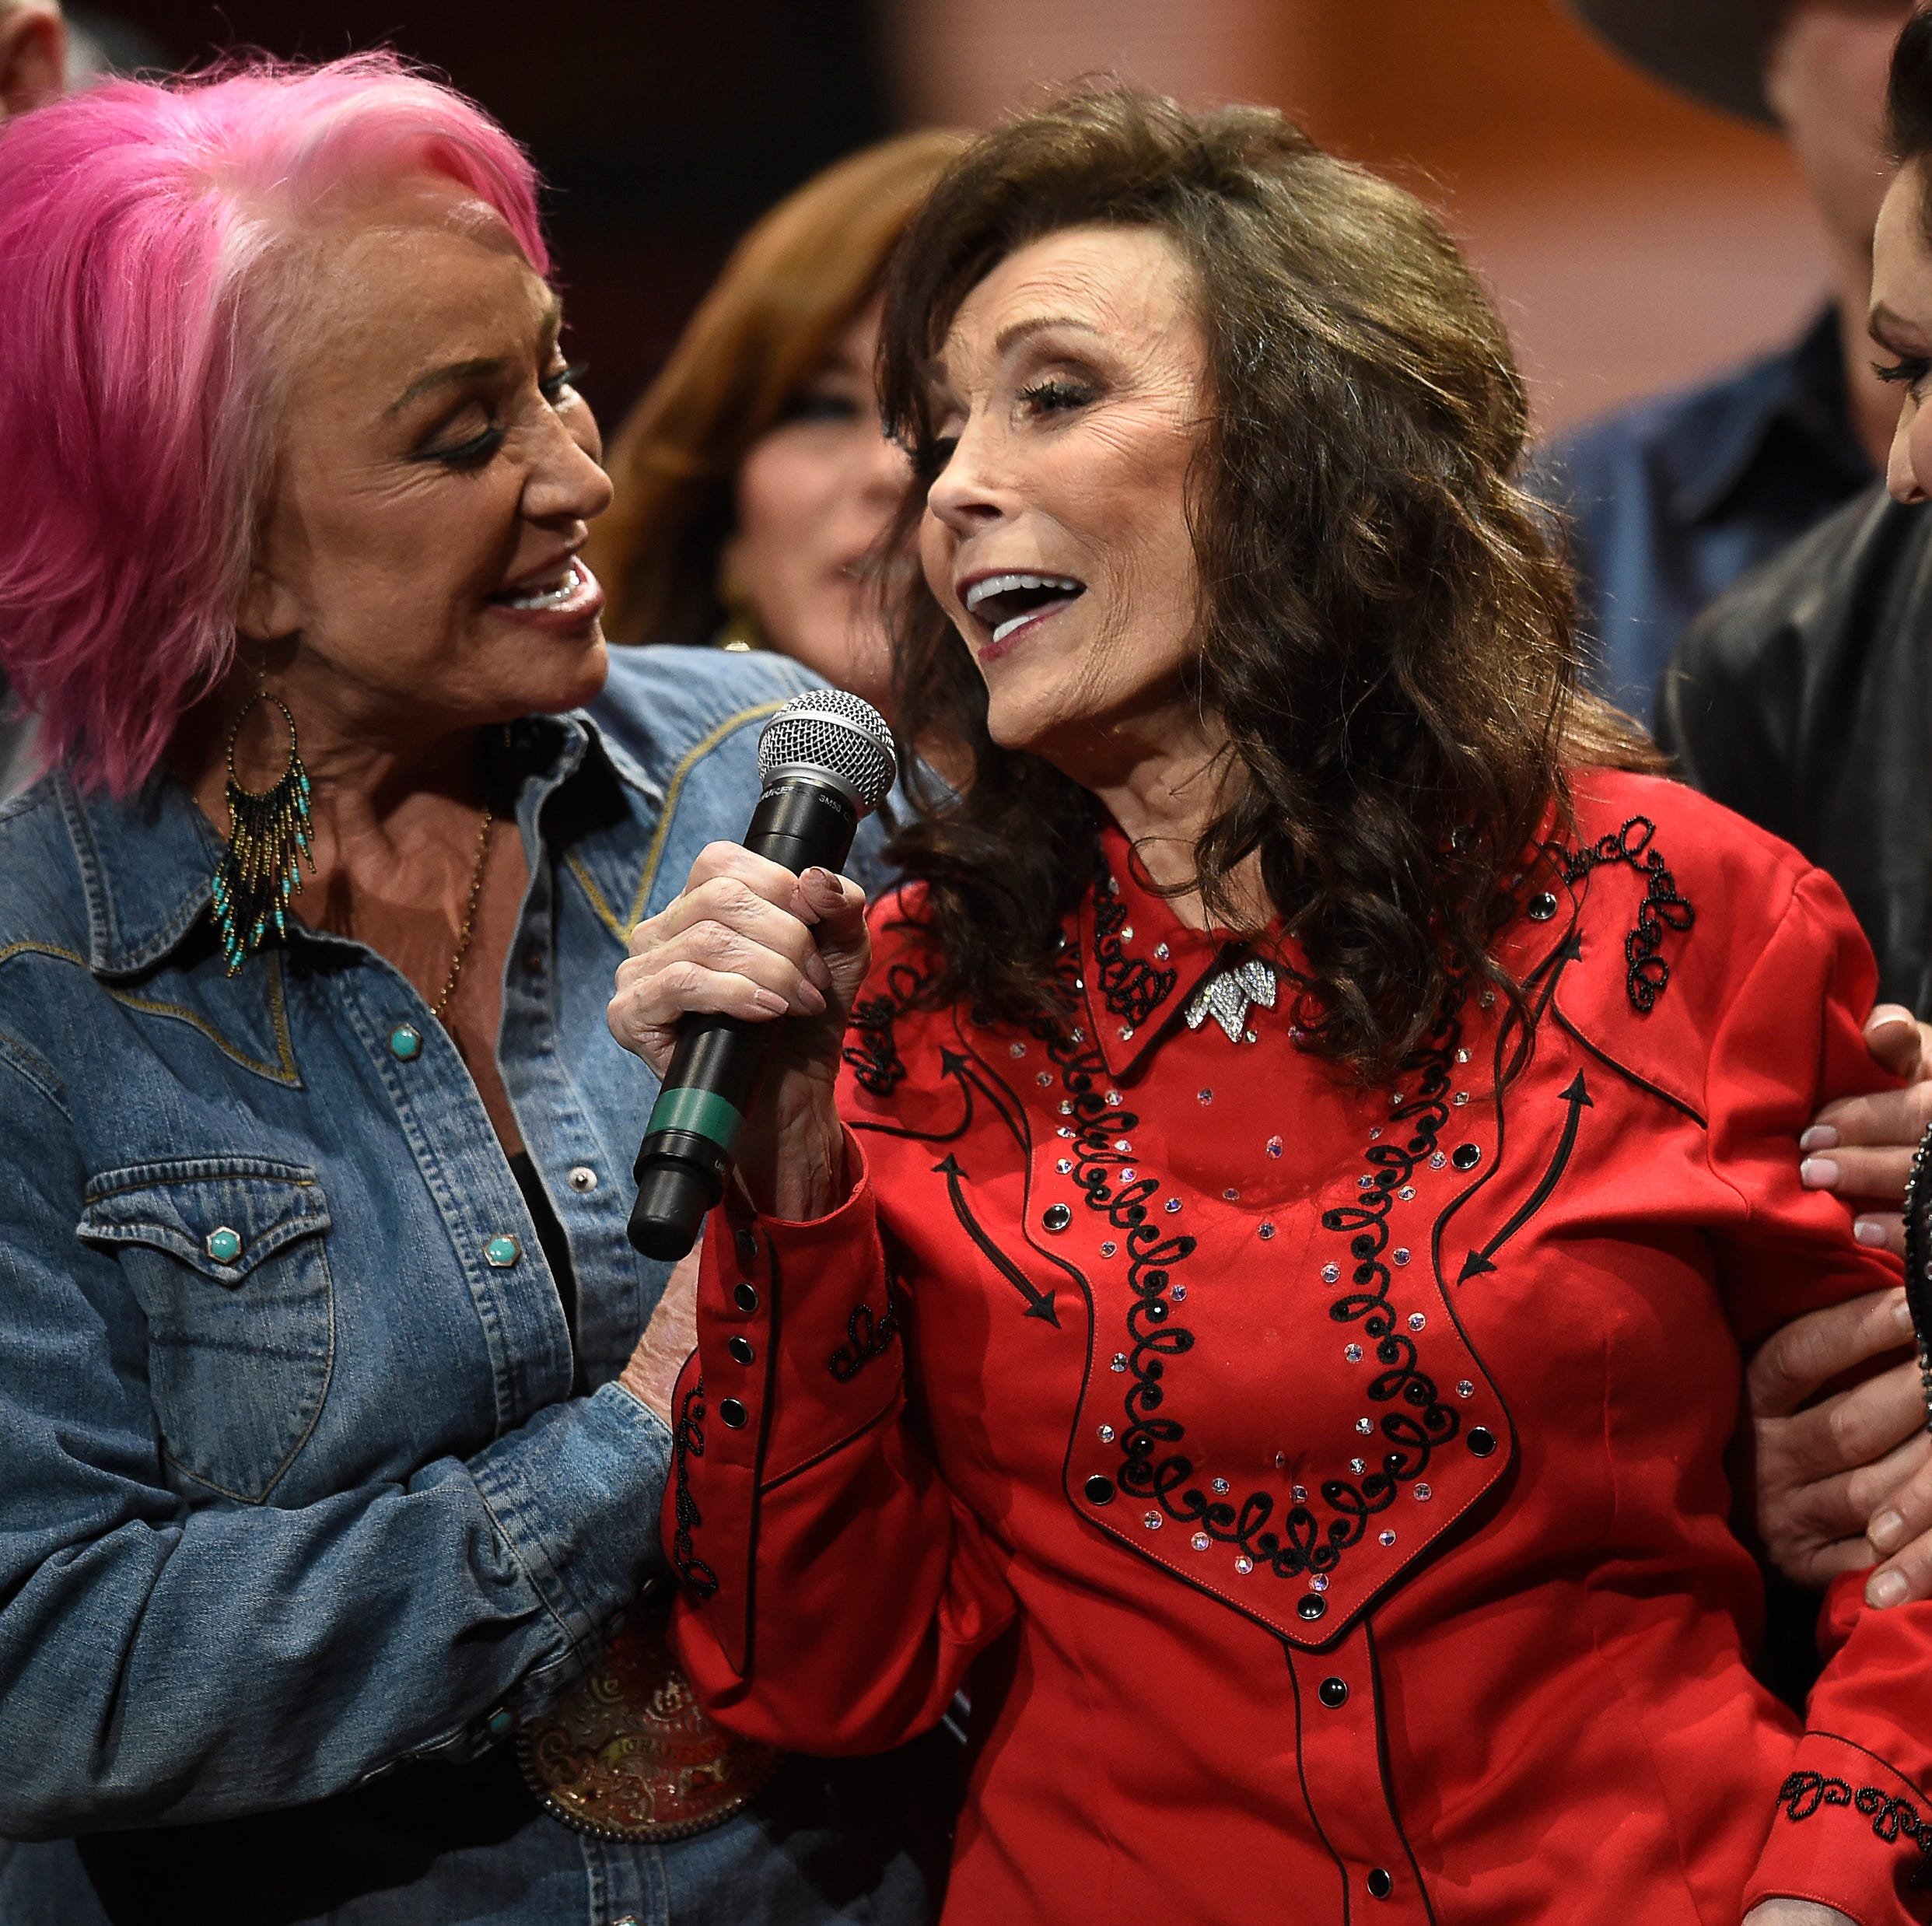 Loretta Lynn tribute concert in Nashville: 10 standout performances